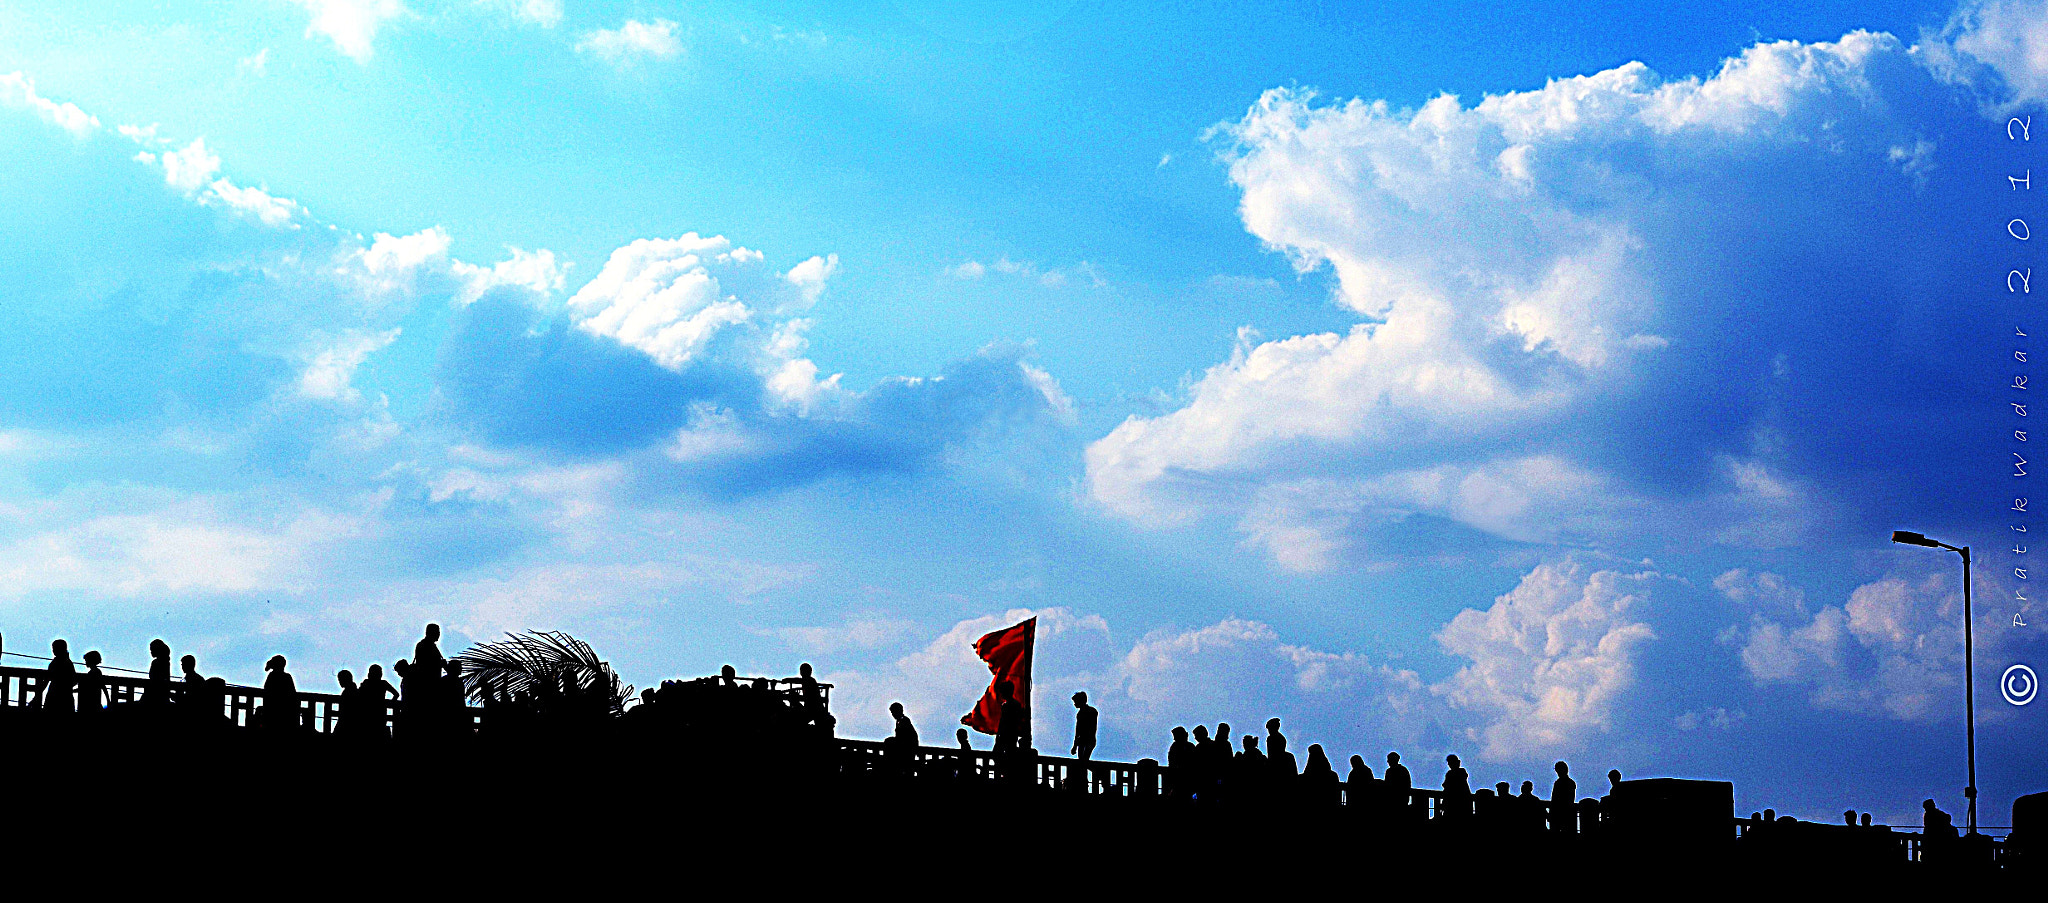 Photograph Let The Flag Stand High by Pratik Wadkar on 500px